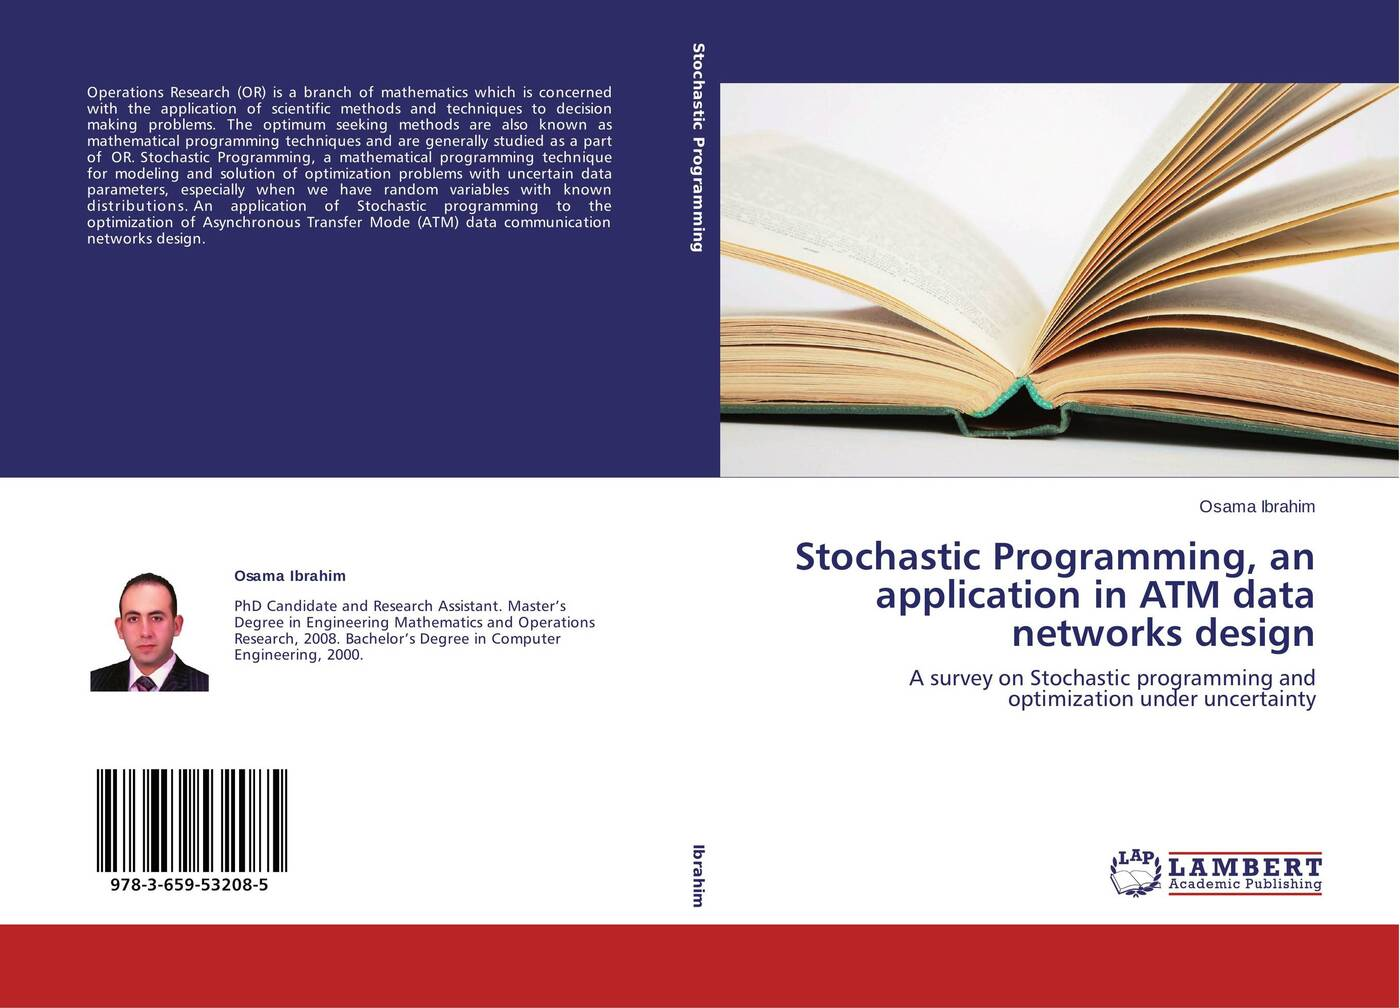 Osama Ibrahim Stochastic Programming, an application in ATM data networks design